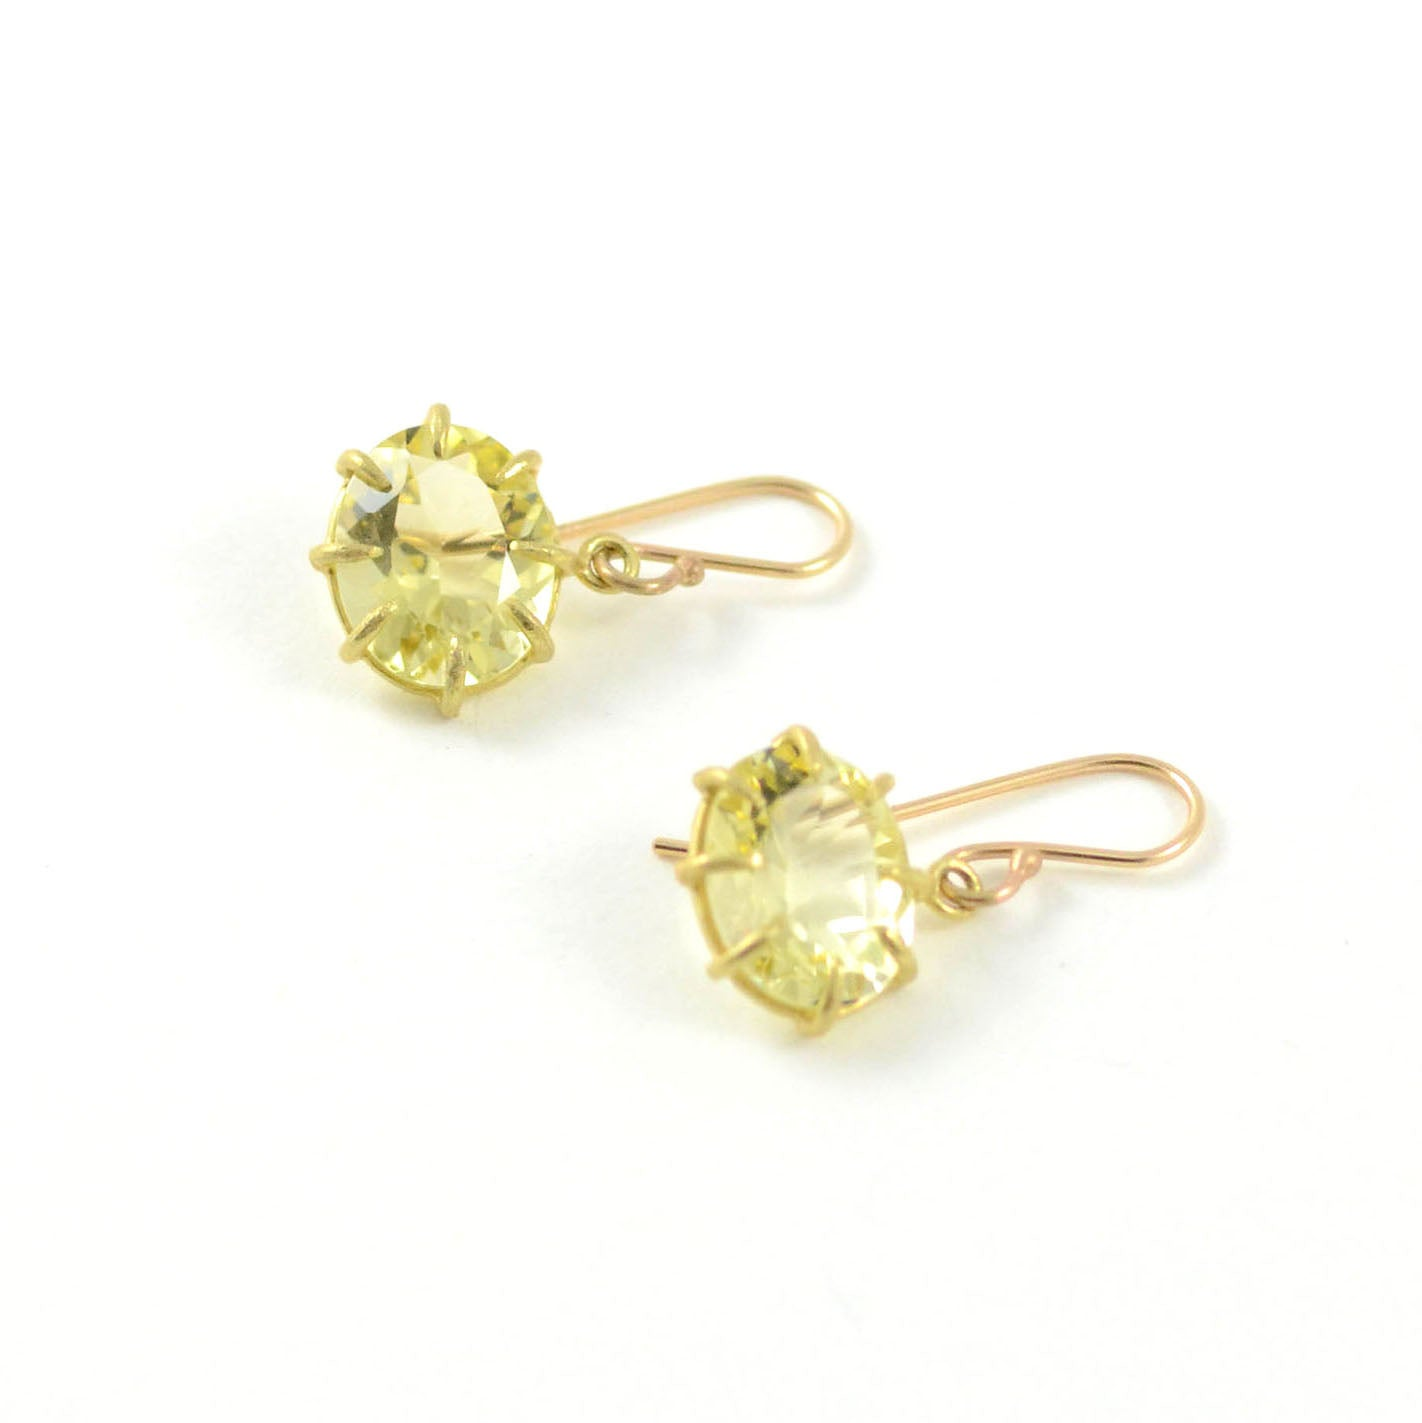 Rosanne Pugliese Earrings Small Oval Drops Faceted Citrine 18 Karat Yellow Gold Prongs French Wires